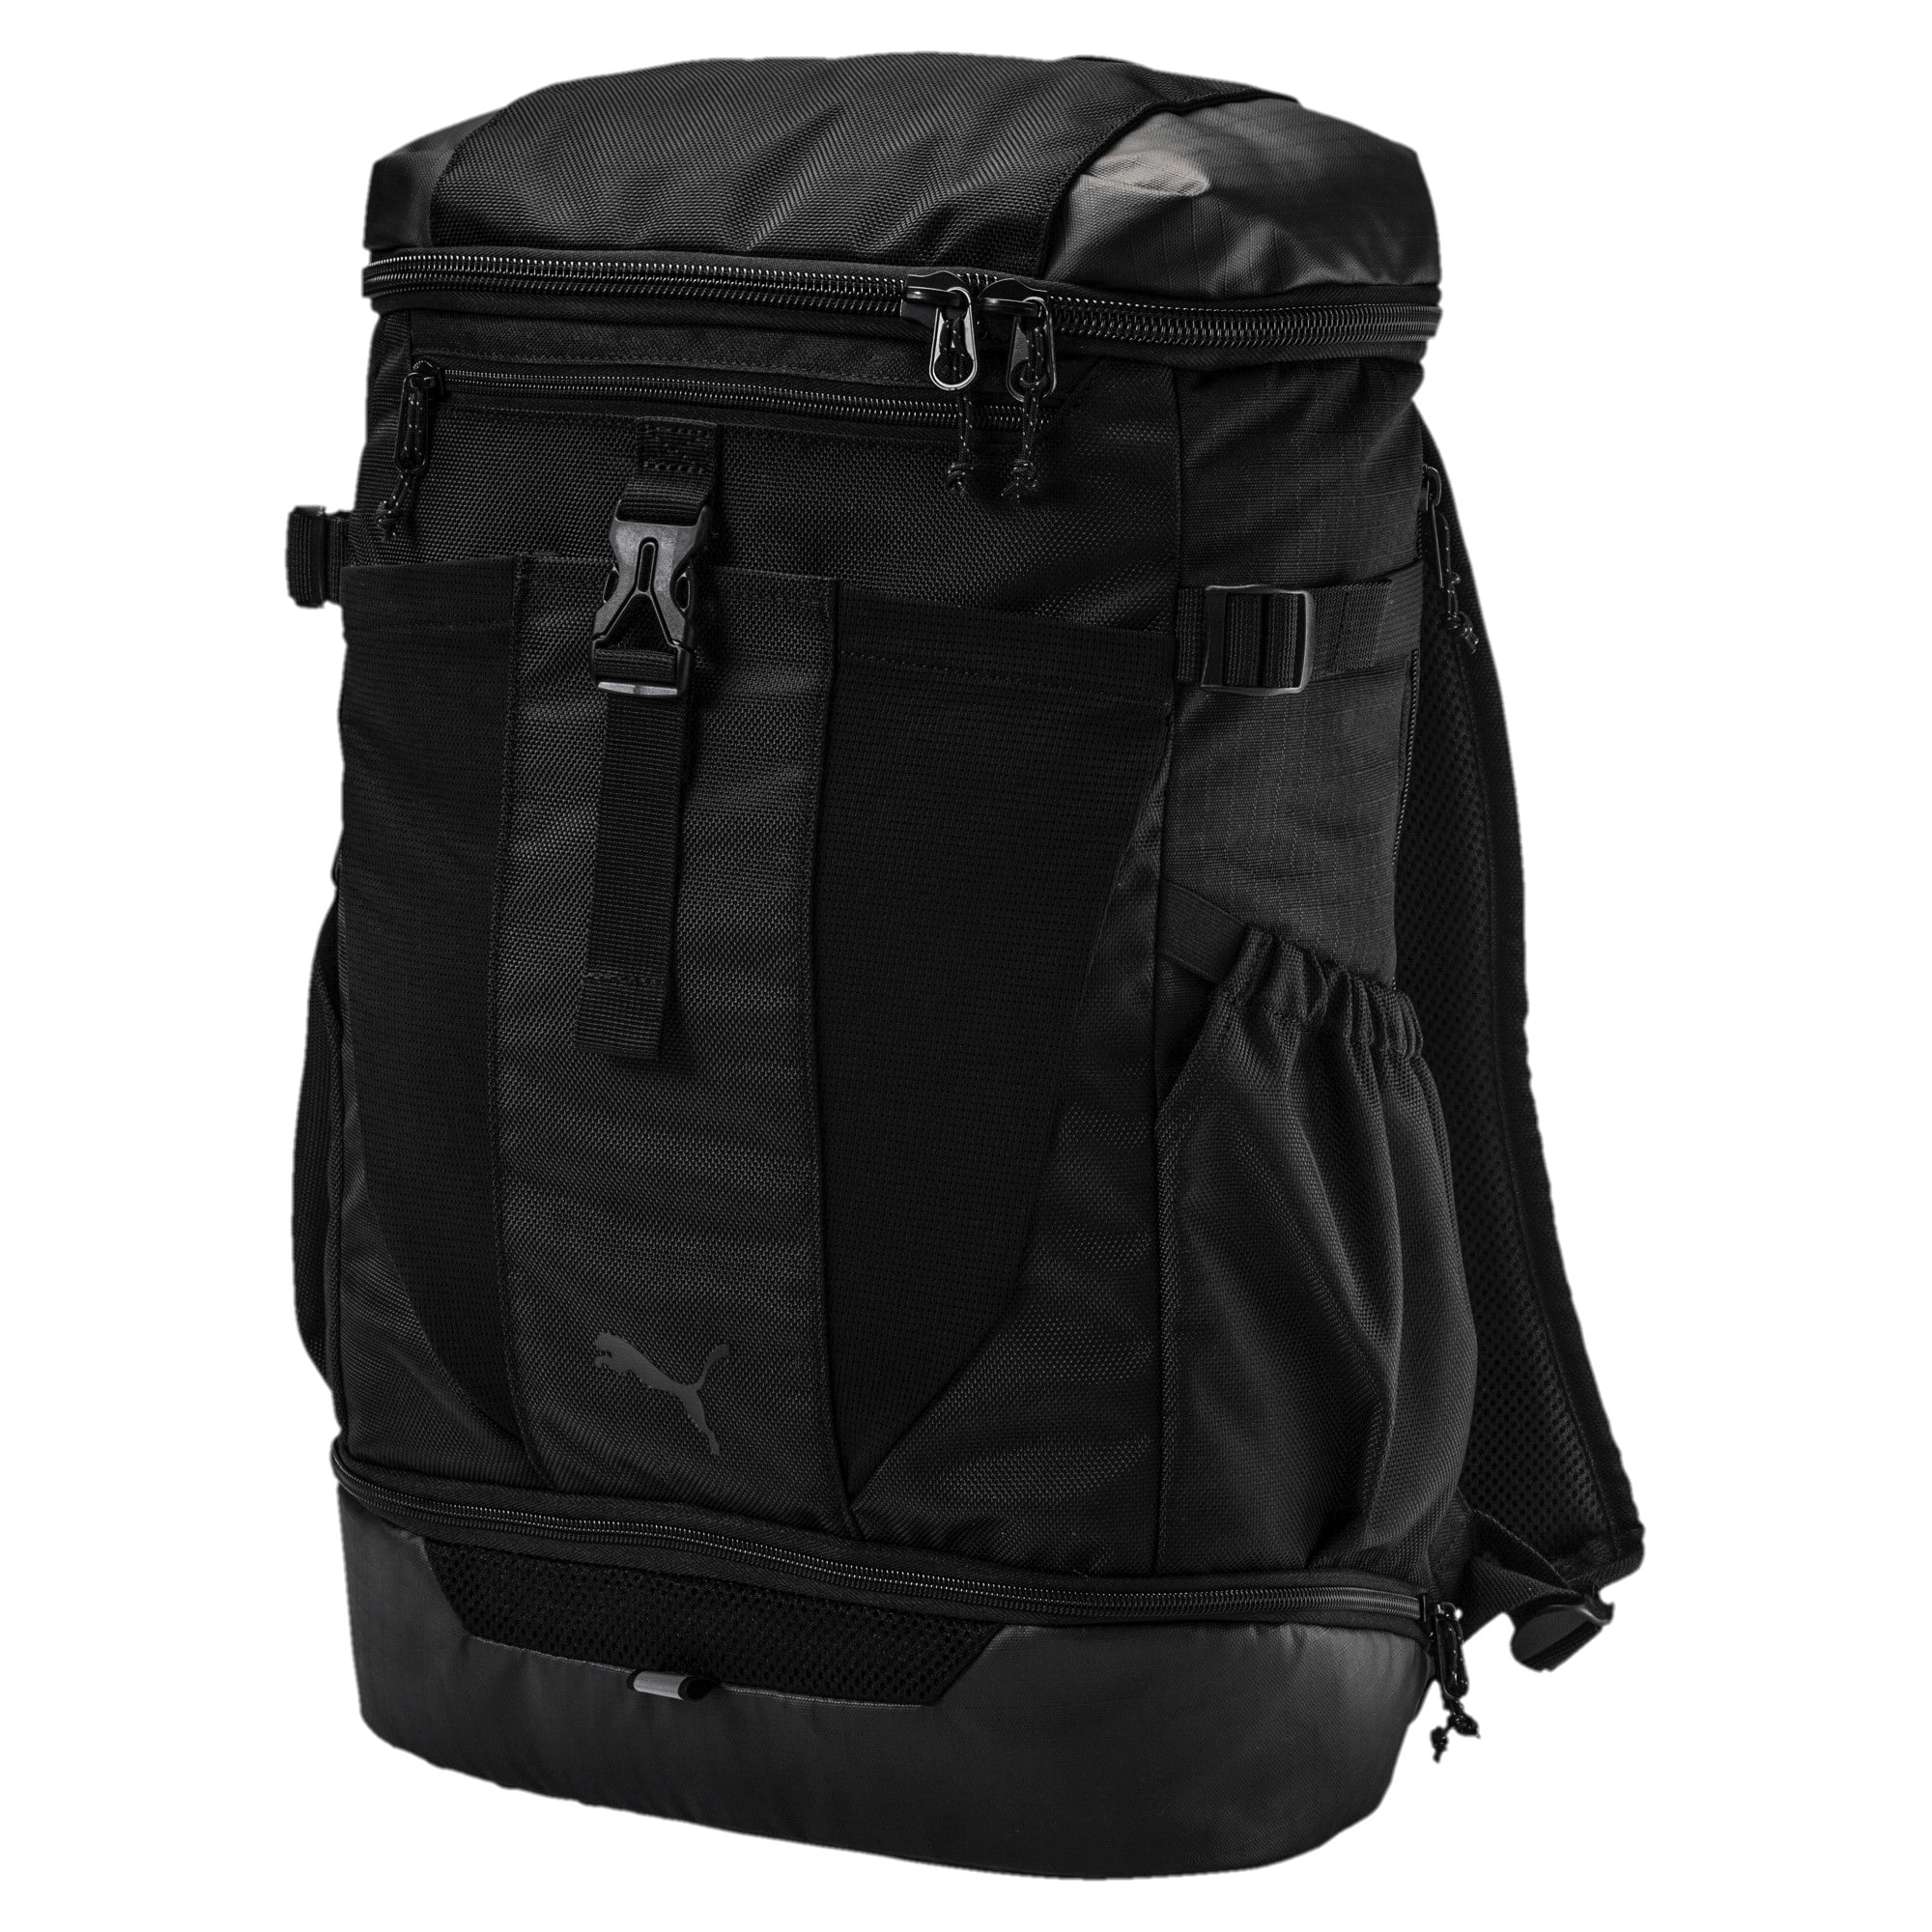 Thumbnail 1 of Energy Backpack, Puma Black, medium-IND